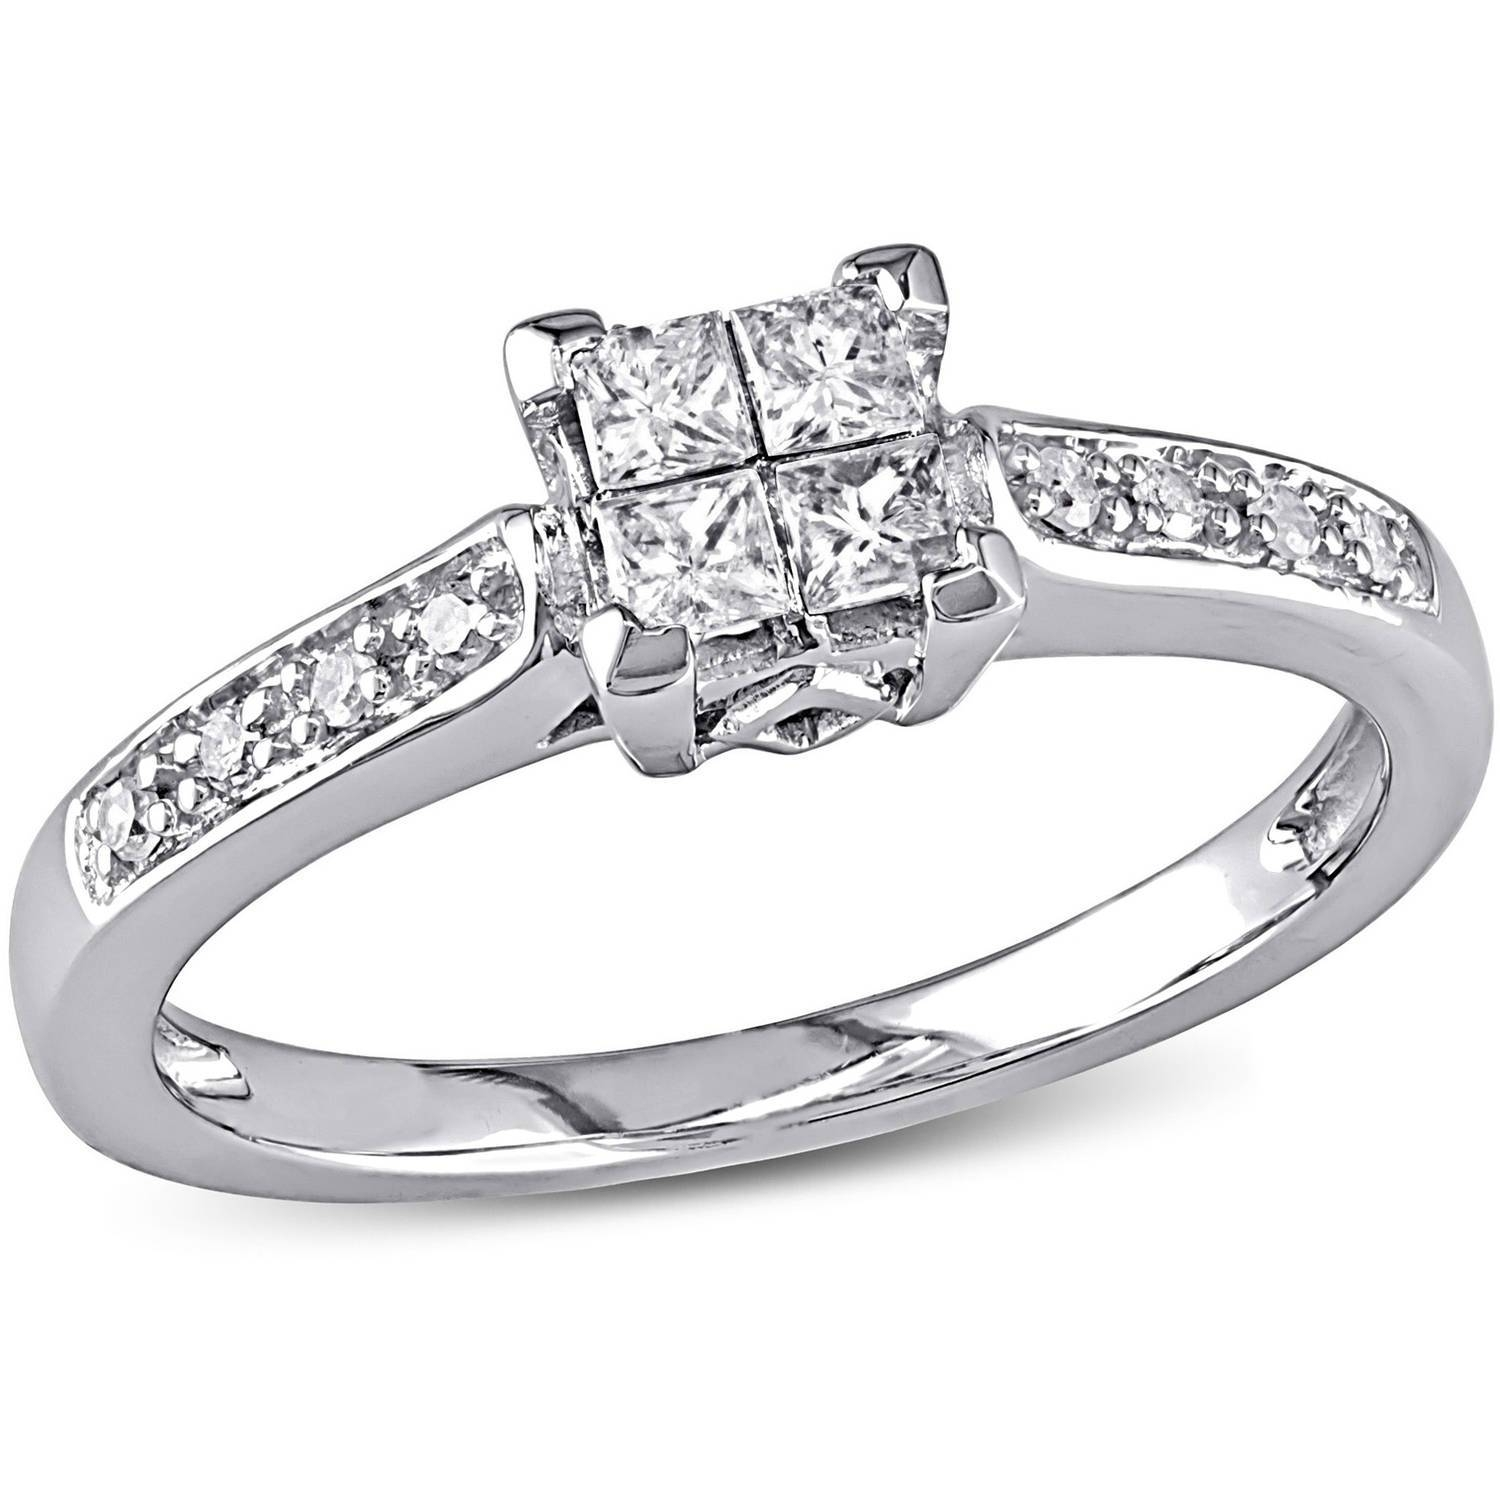 Walmart Diamond Rings | Wedding, Promise, Diamond, Engagement Throughout Walmart White Gold Wedding Bands (View 10 of 15)